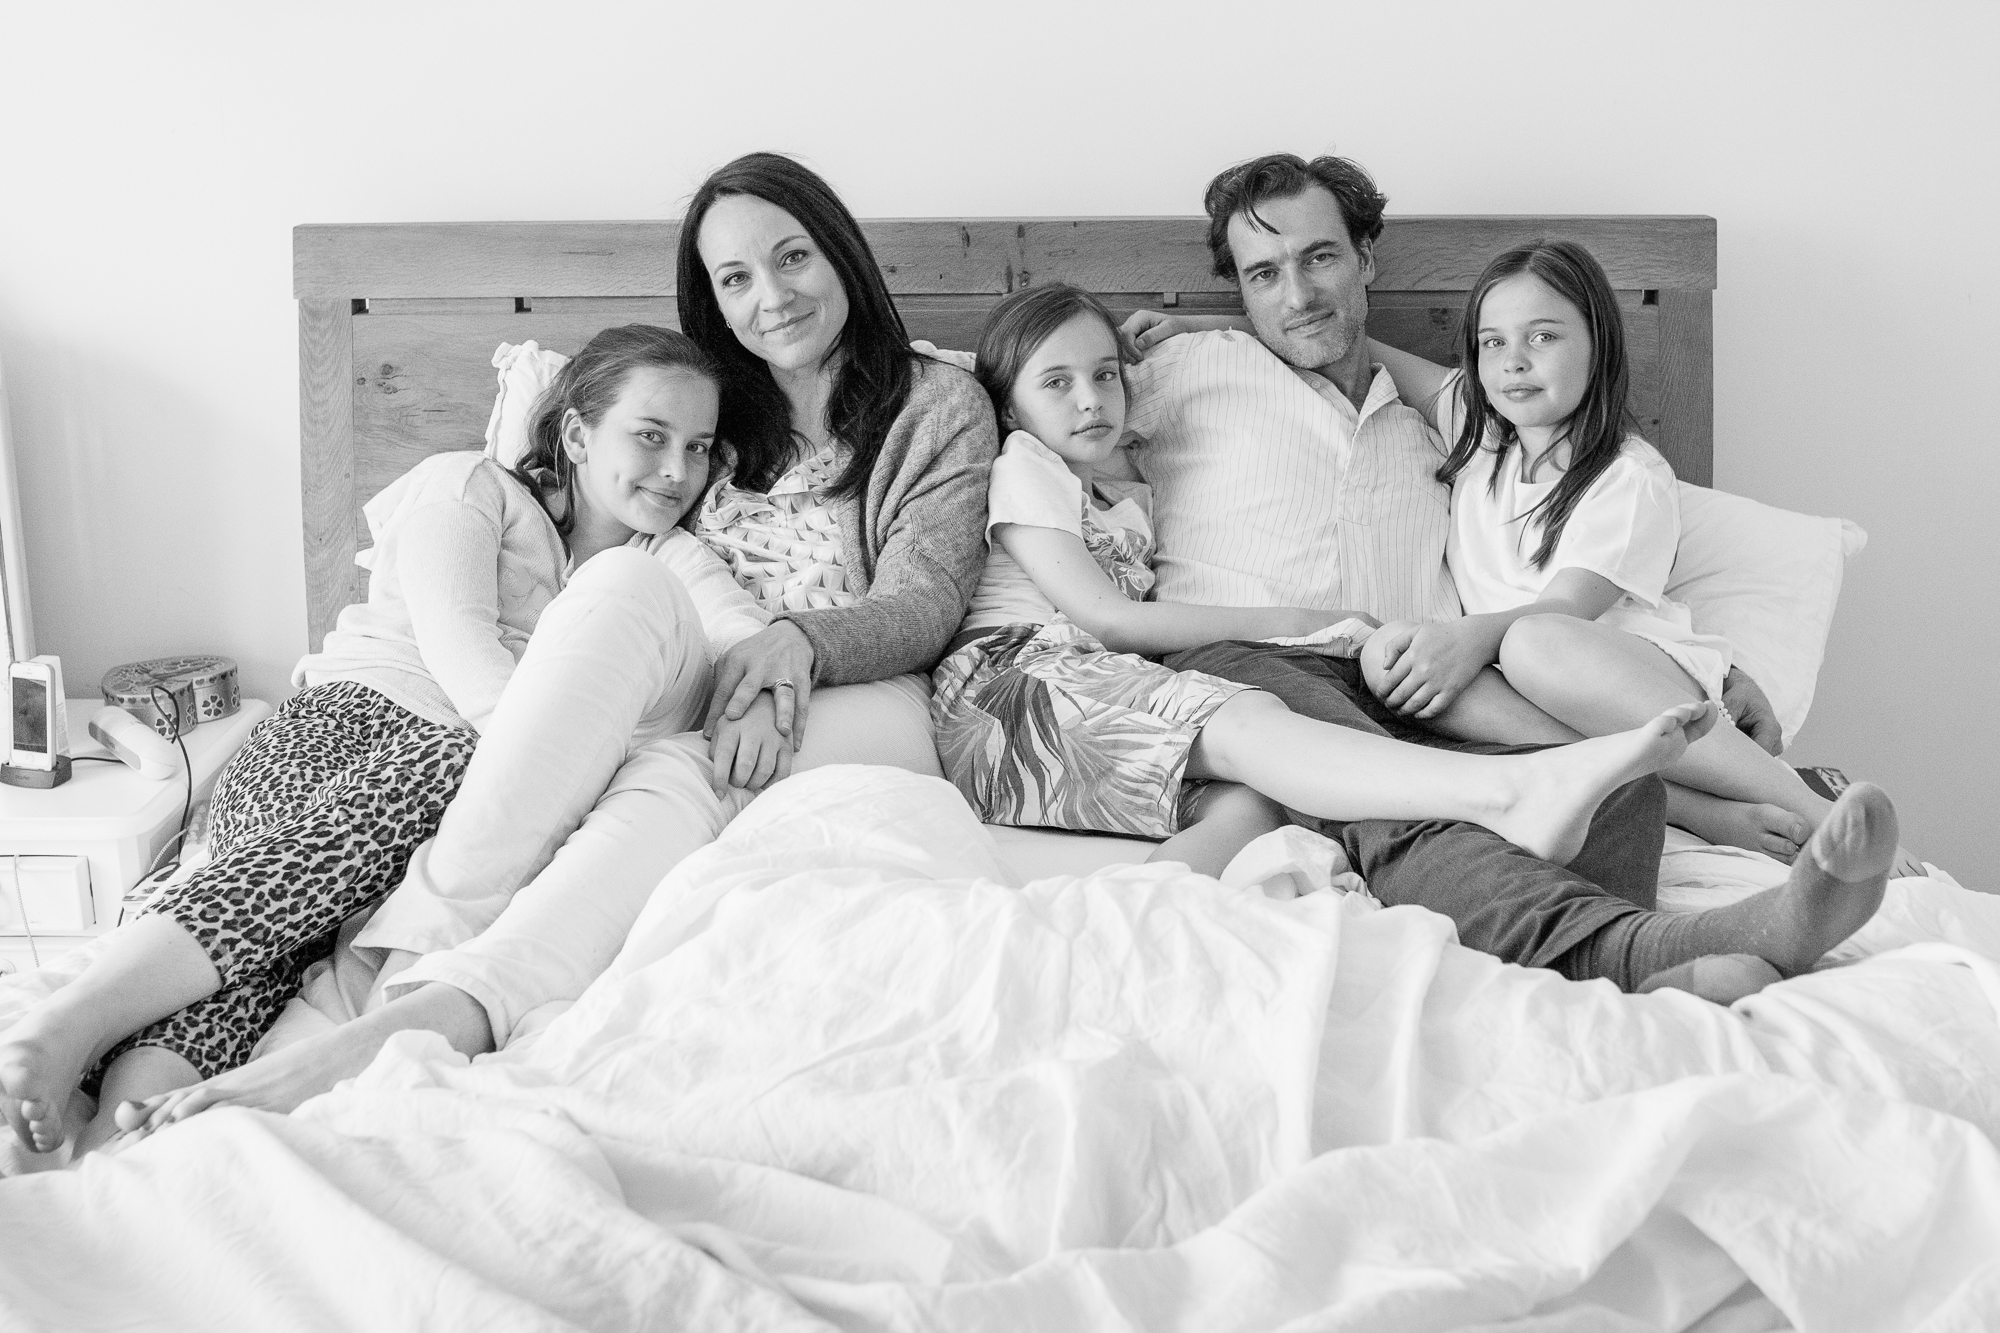 Family portrait photographer LondonFamily portrait photographer London